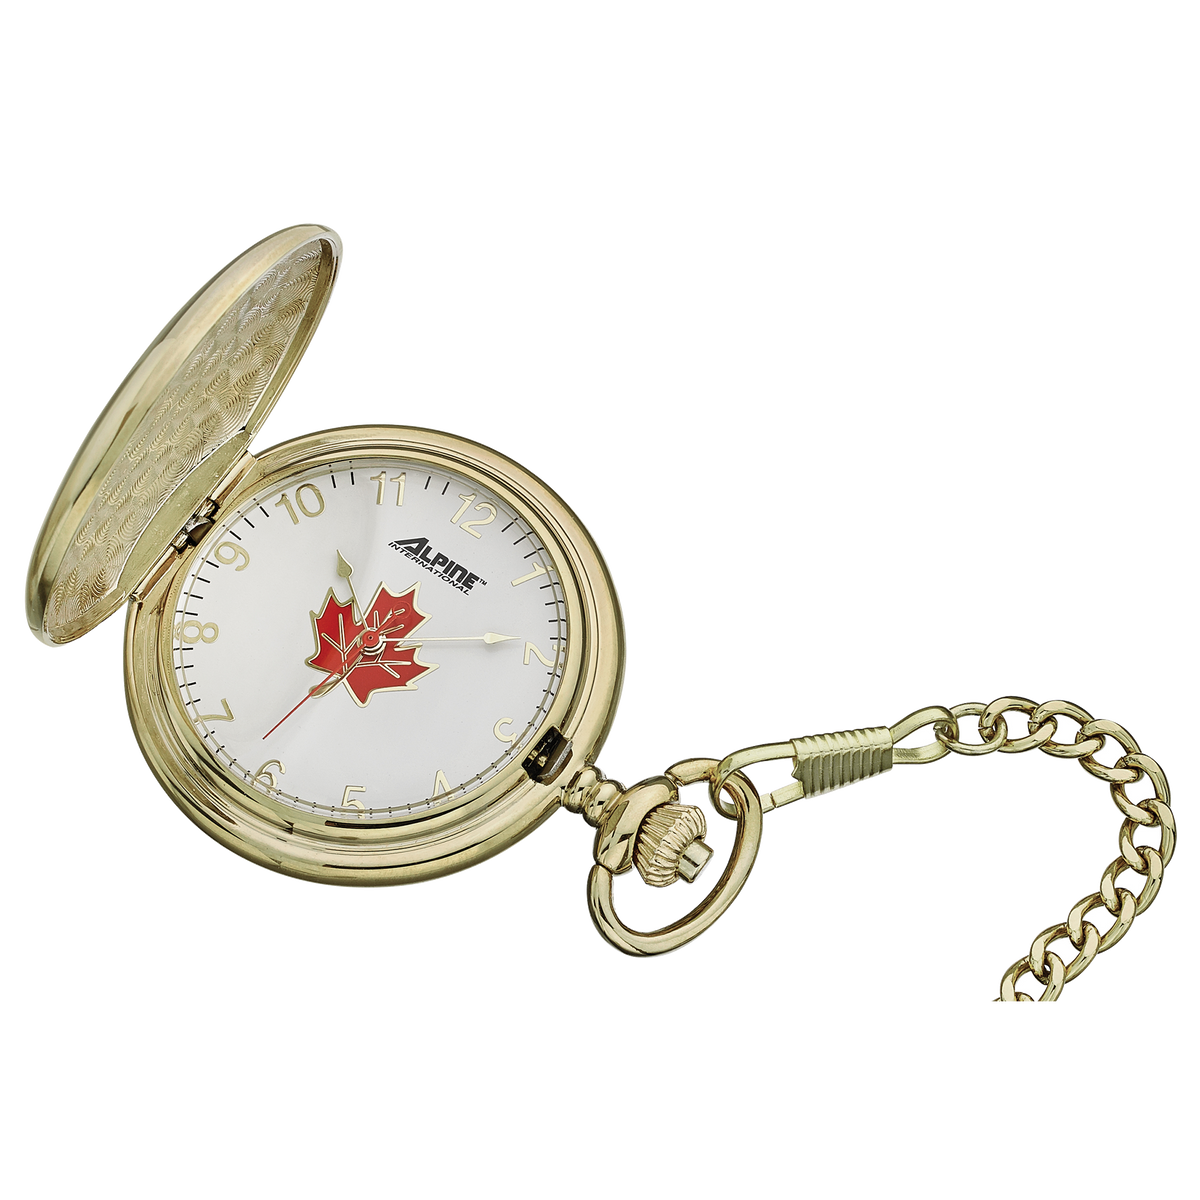 Alpine Quartz Pocket Watch - Gold Tone with Maple Leaf